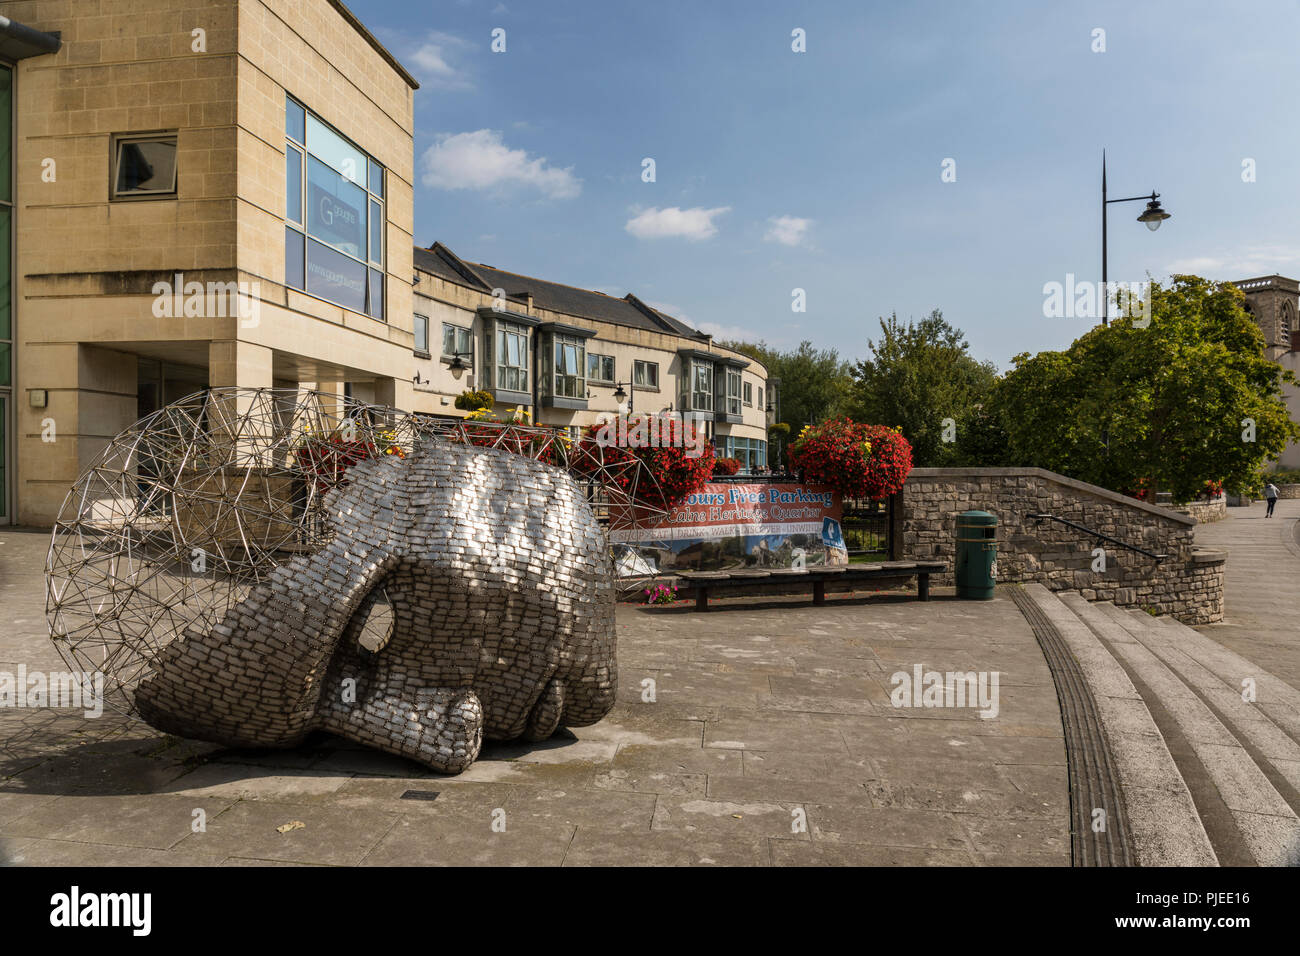 The Head sculpture created by Rick Kirby, Calne, Wiltshire, England - Stock Image